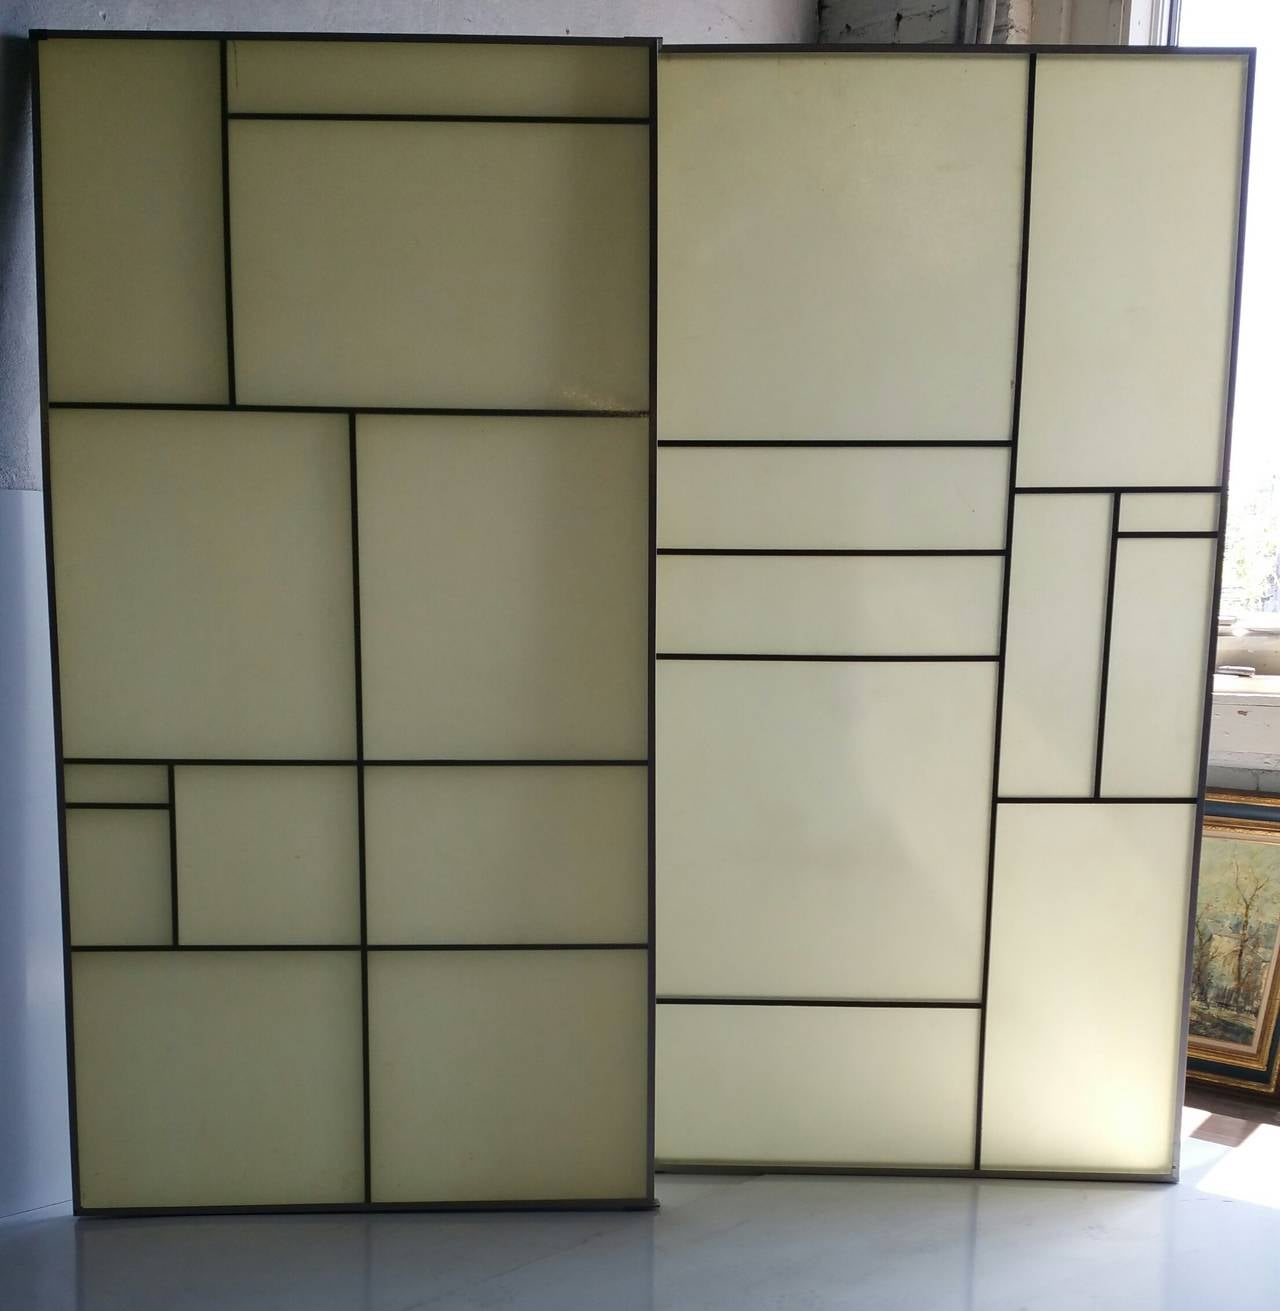 Architectural Aluminum and Fiberglass Panels or Screen, Mondrian Design For Sale 2